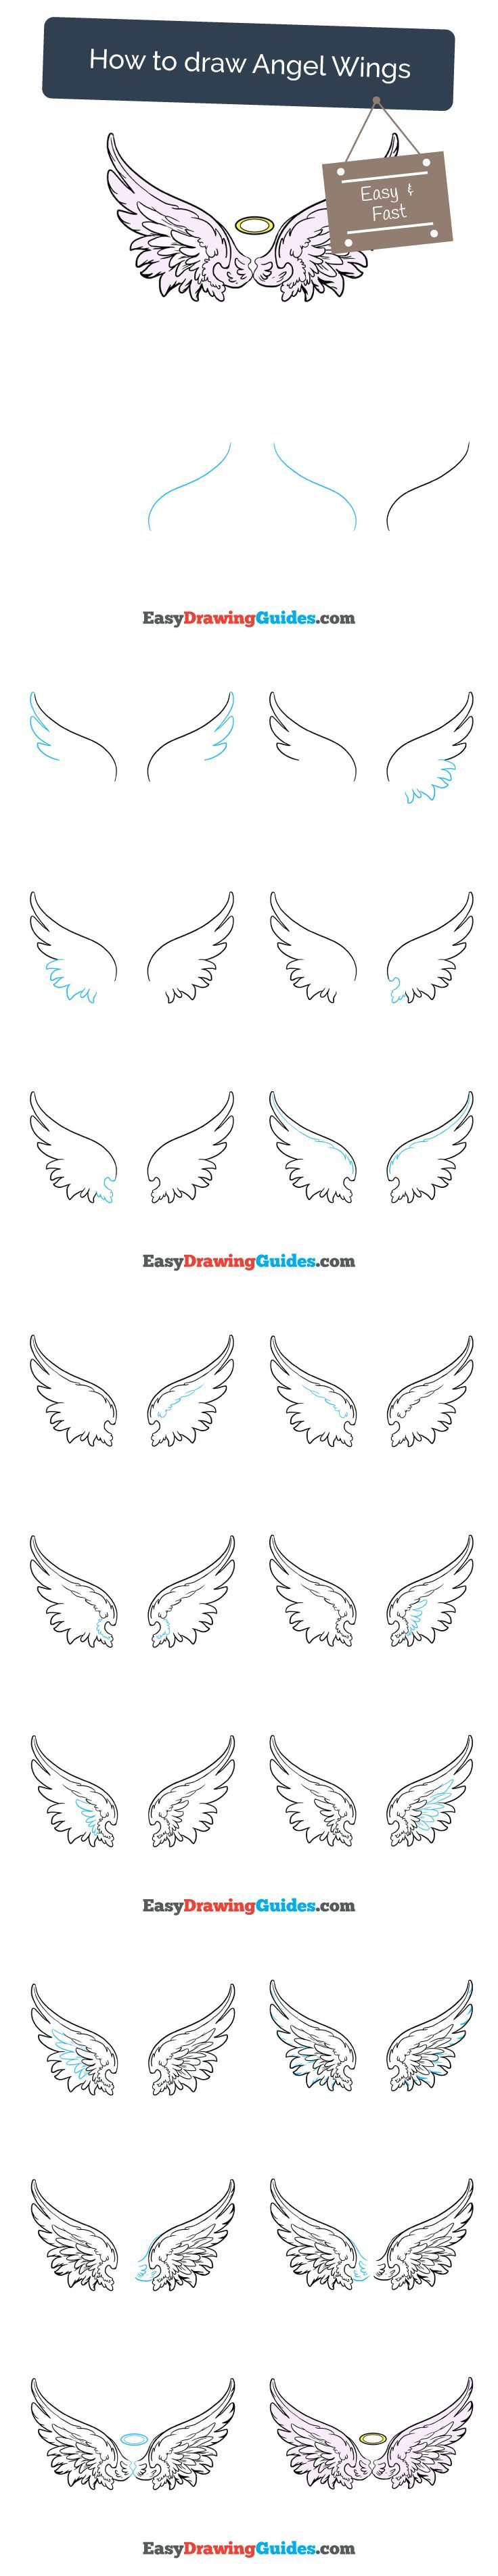 Draw Pattern - Learn How to Draw Angel Wings: Easy Step-by ...